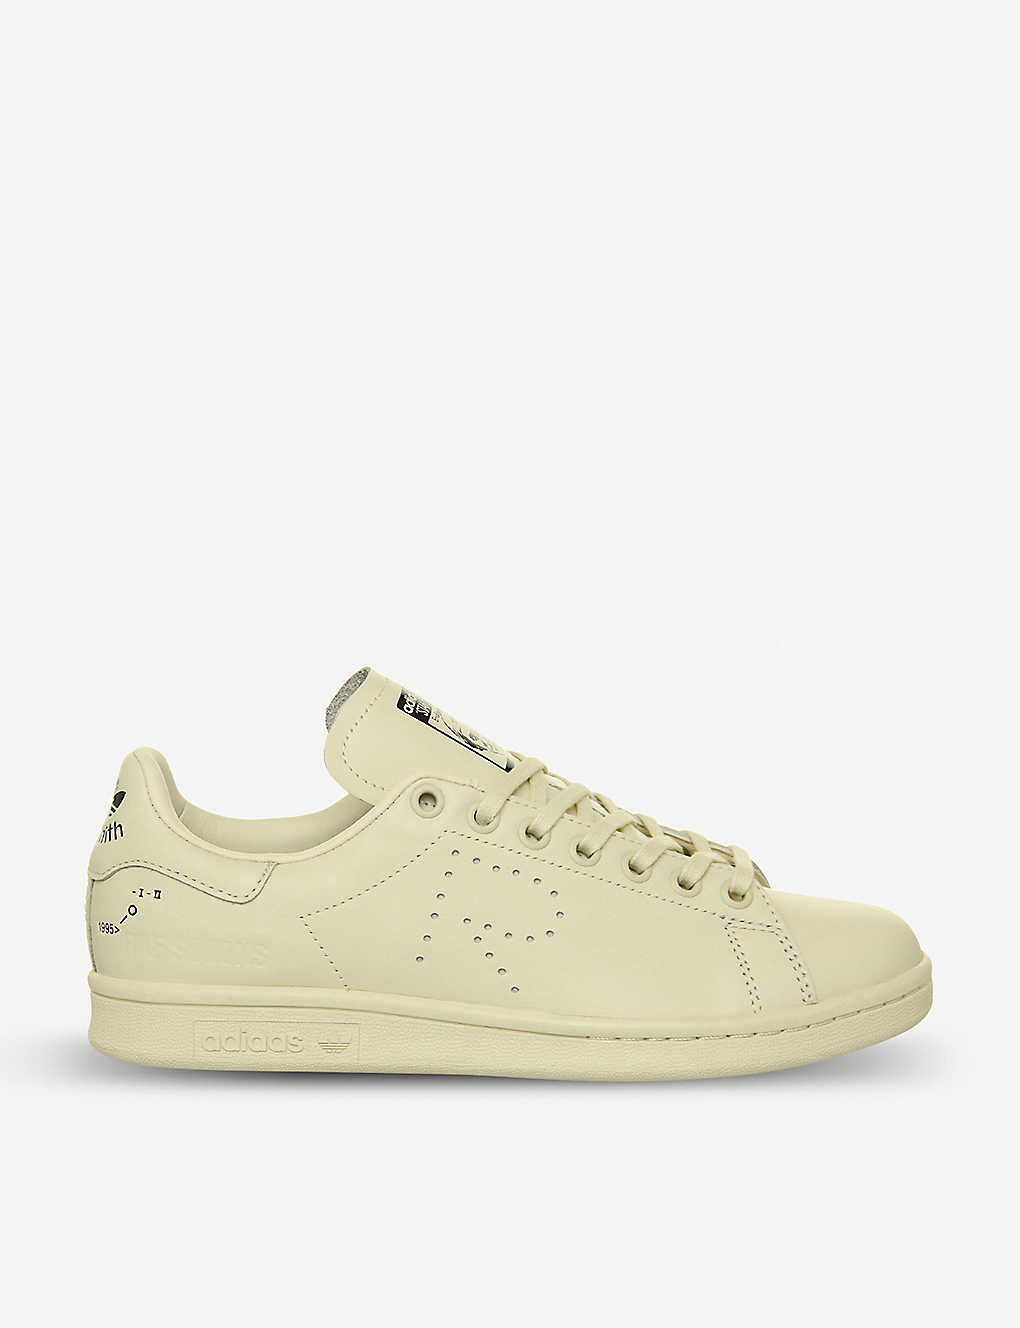 d70693dde6f7 ADIDAS X RAF SIMONS - Stan Smith leather trainers